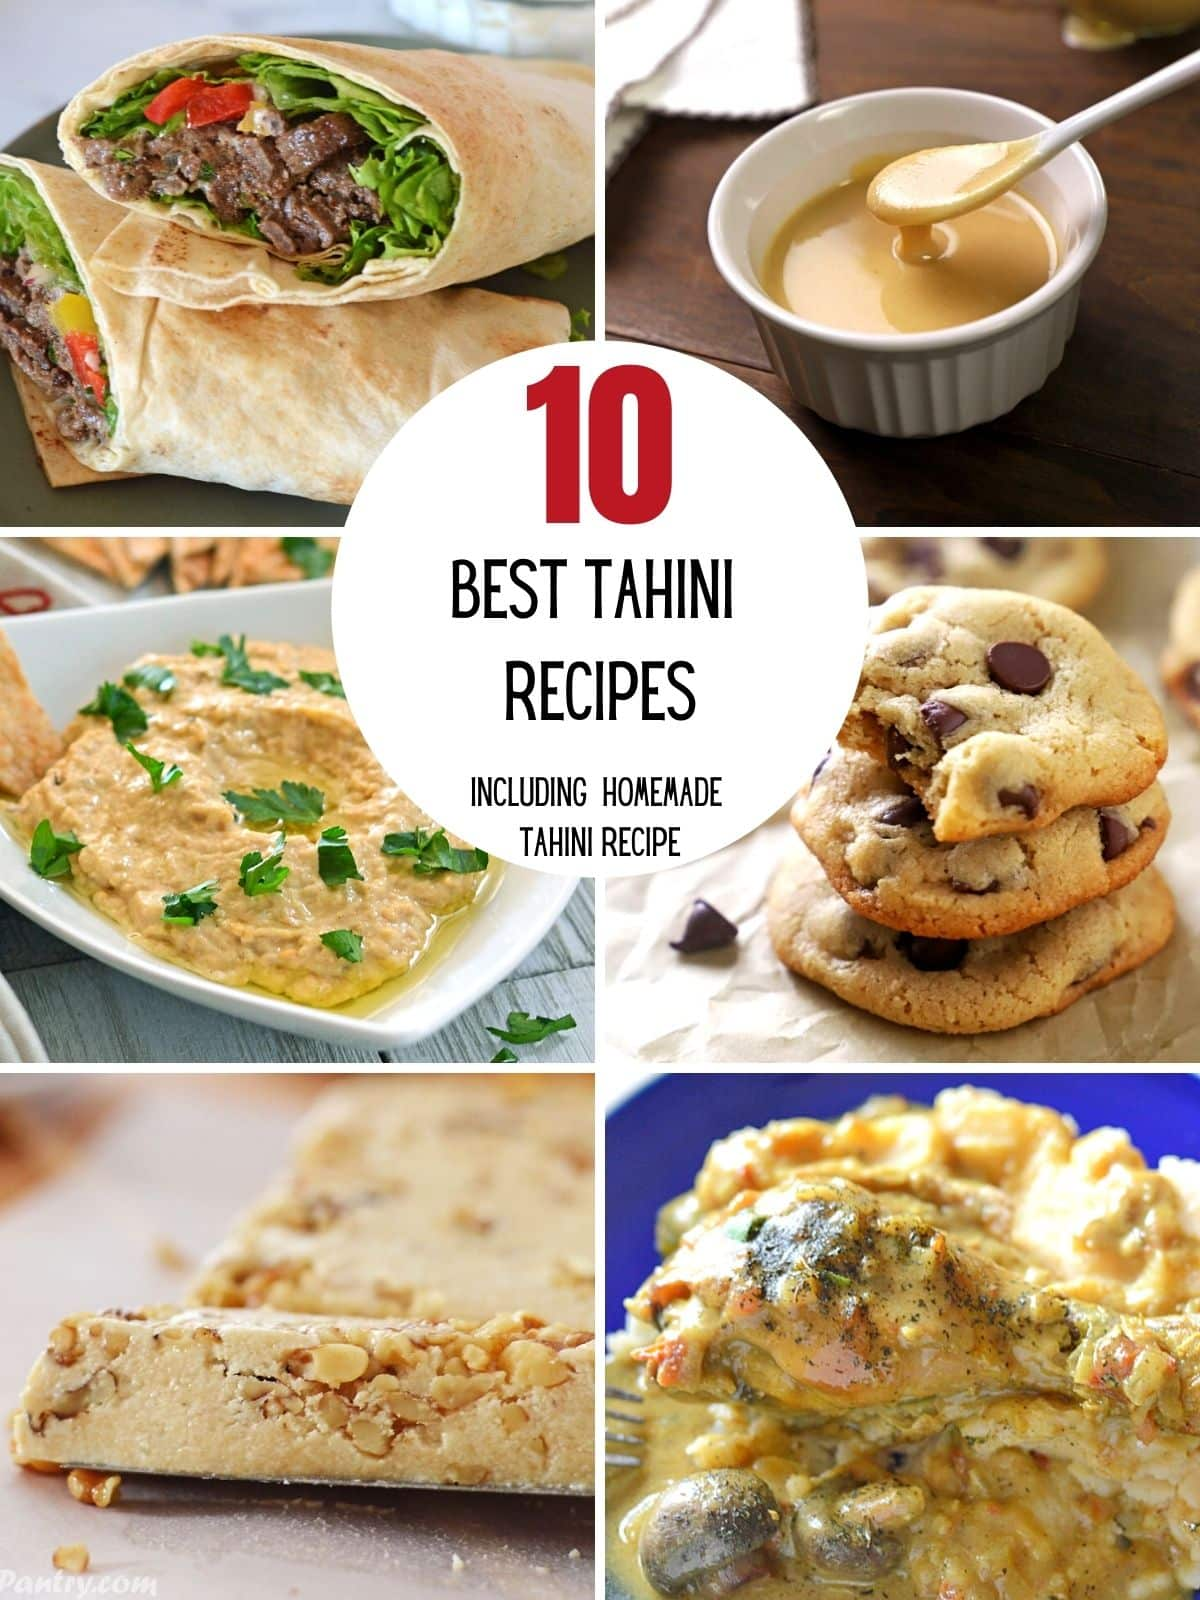 A collage of 6 images showing best recipes for tahini.